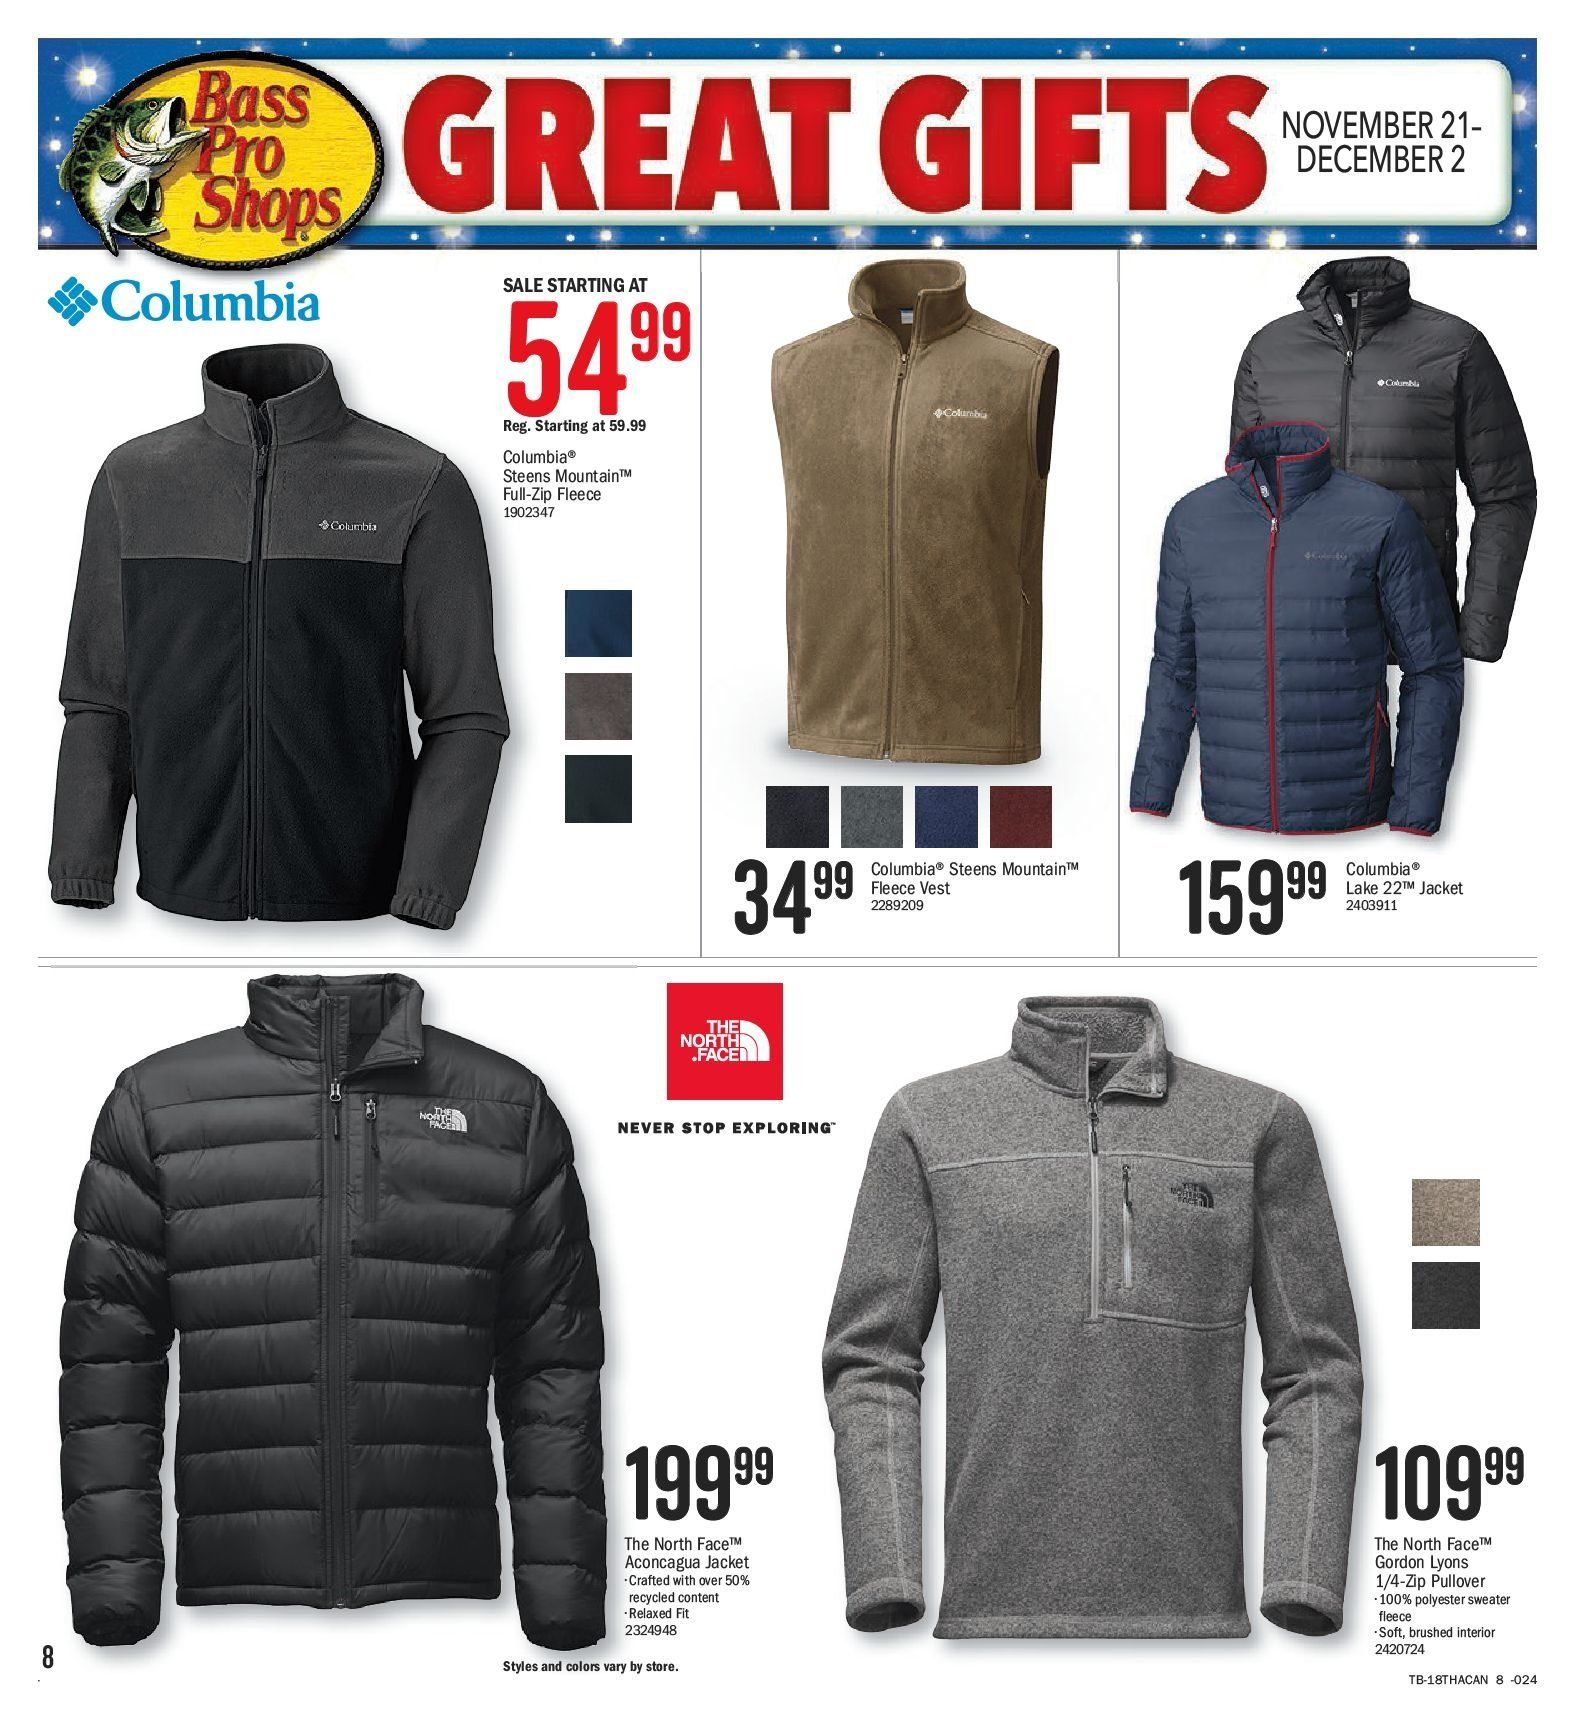 Bass Pro Shops Flyer  - November 21, 2018 - December 02, 2018. Page 8.